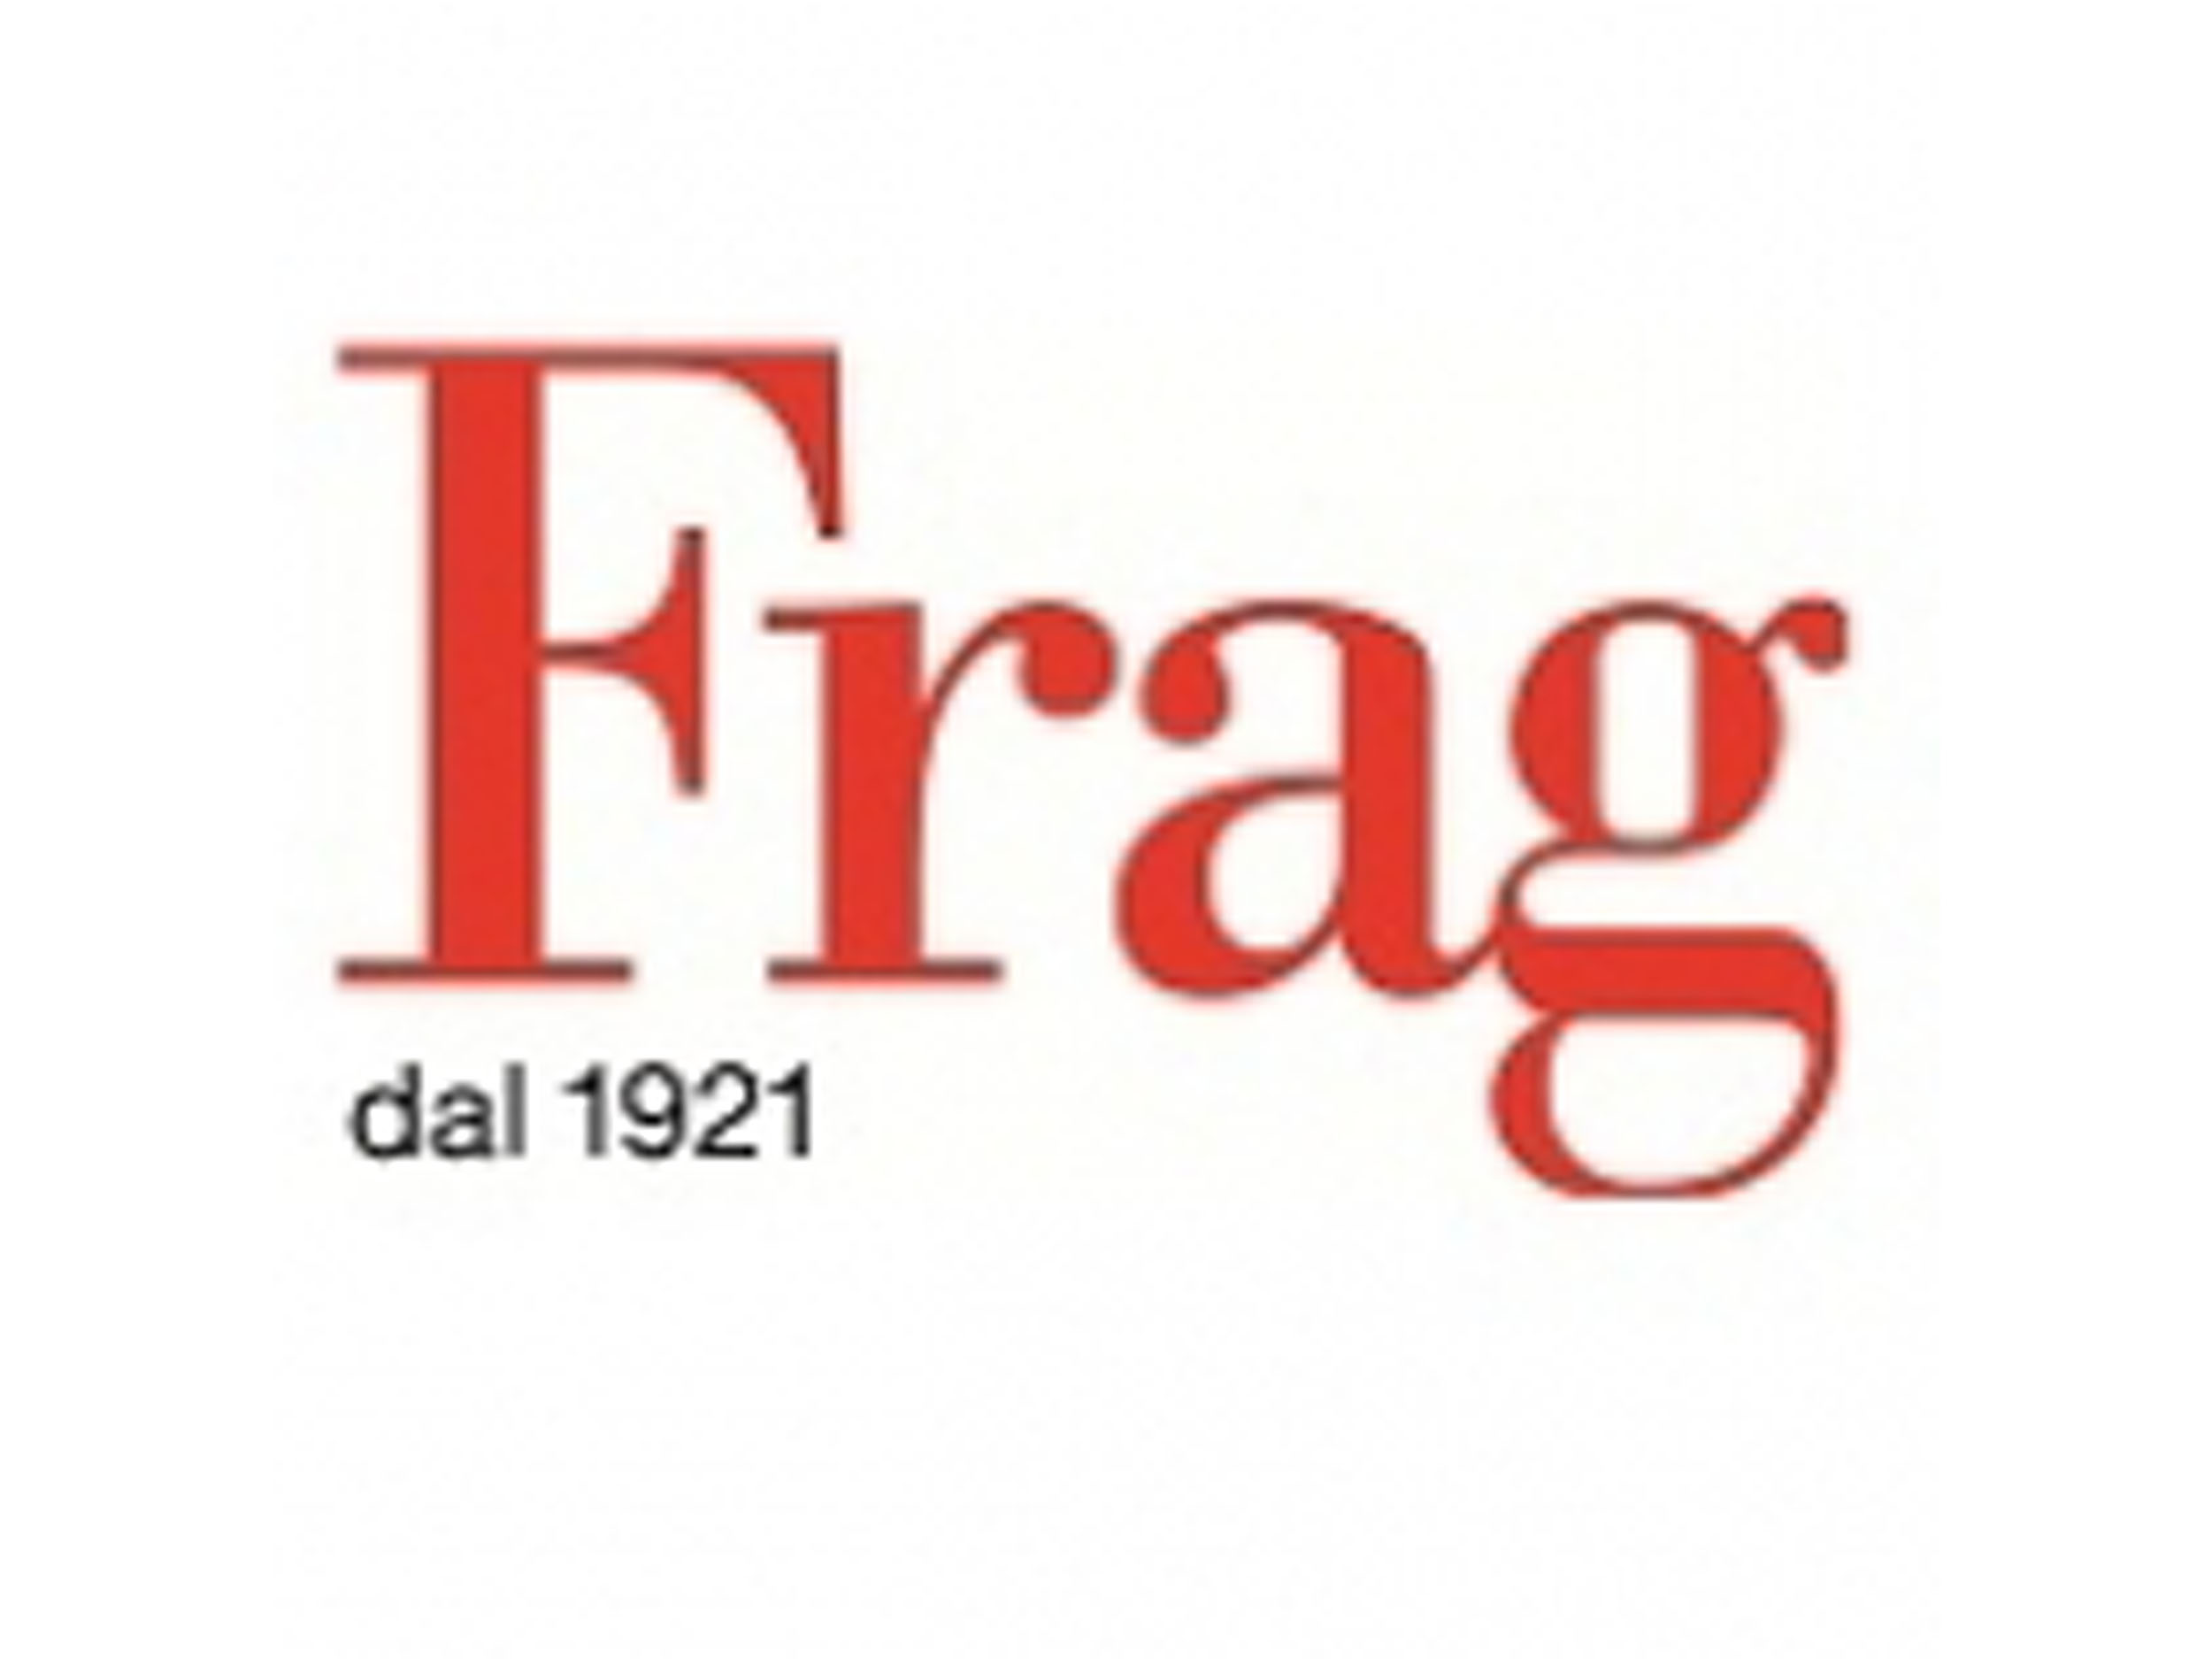 Frag - With a long family tradition, the company has been treating leather and saddle leather since 1921 with dedication, mastery and experience. Frag success on the market is due to the up to date shapes, contemporary suggestions and materials in order to be turned later into expressive potentialities.